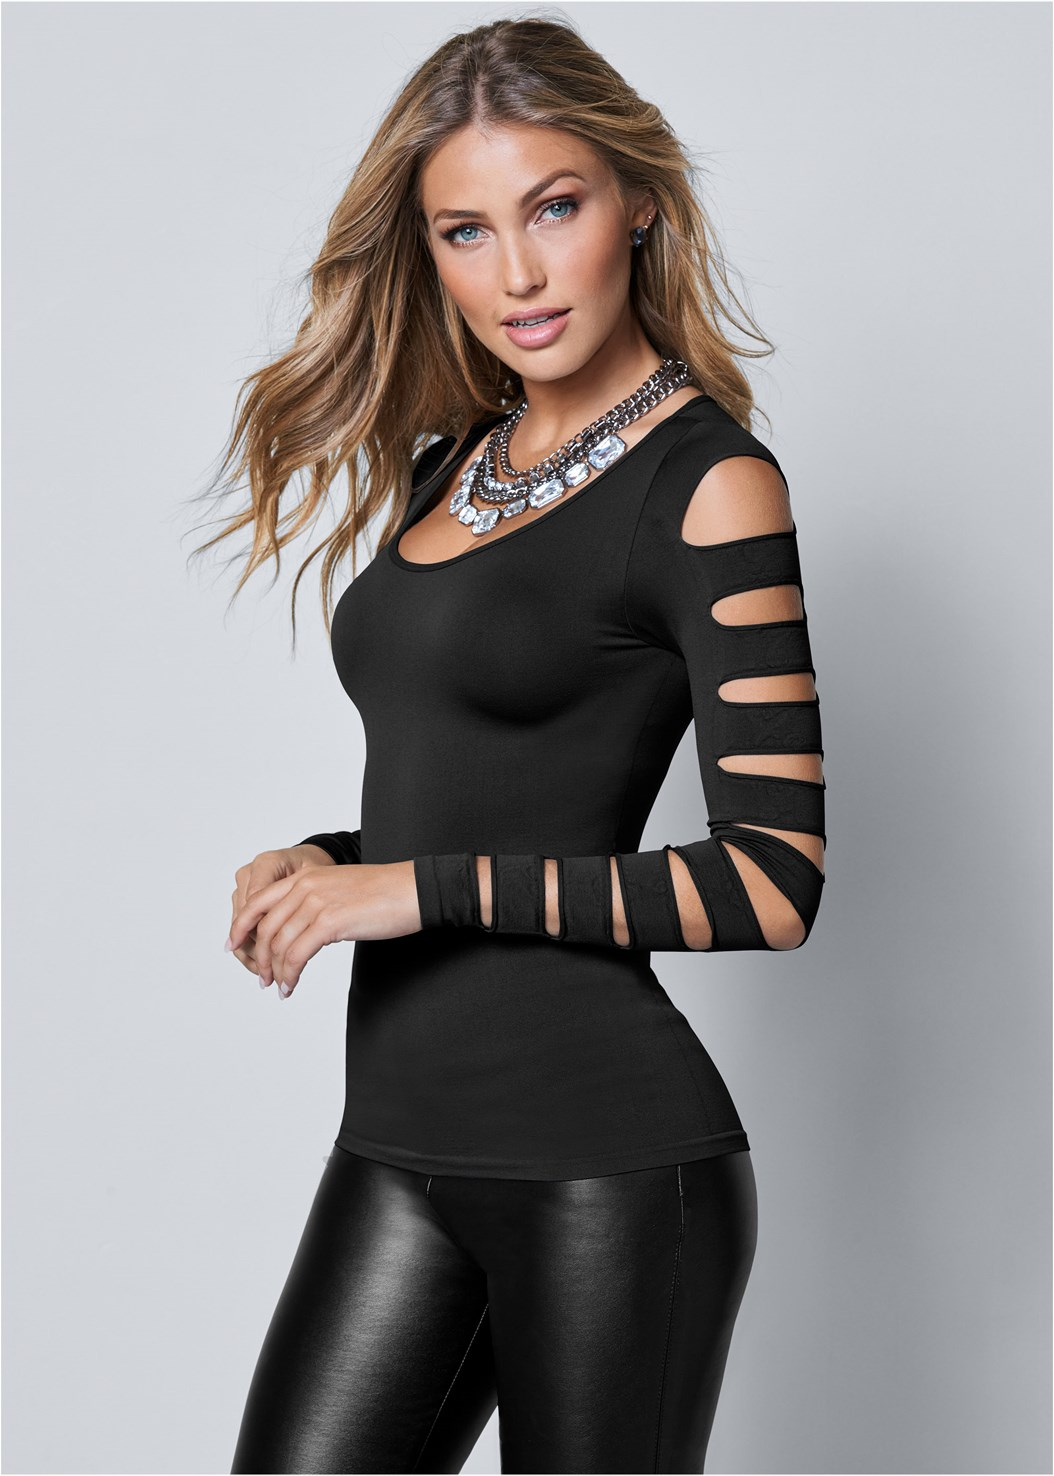 Cut Out Long Sleeve Top,Faux Leather Lace Up Shorts,Slouchy Mid-Calf Boot,Block Heel Boots